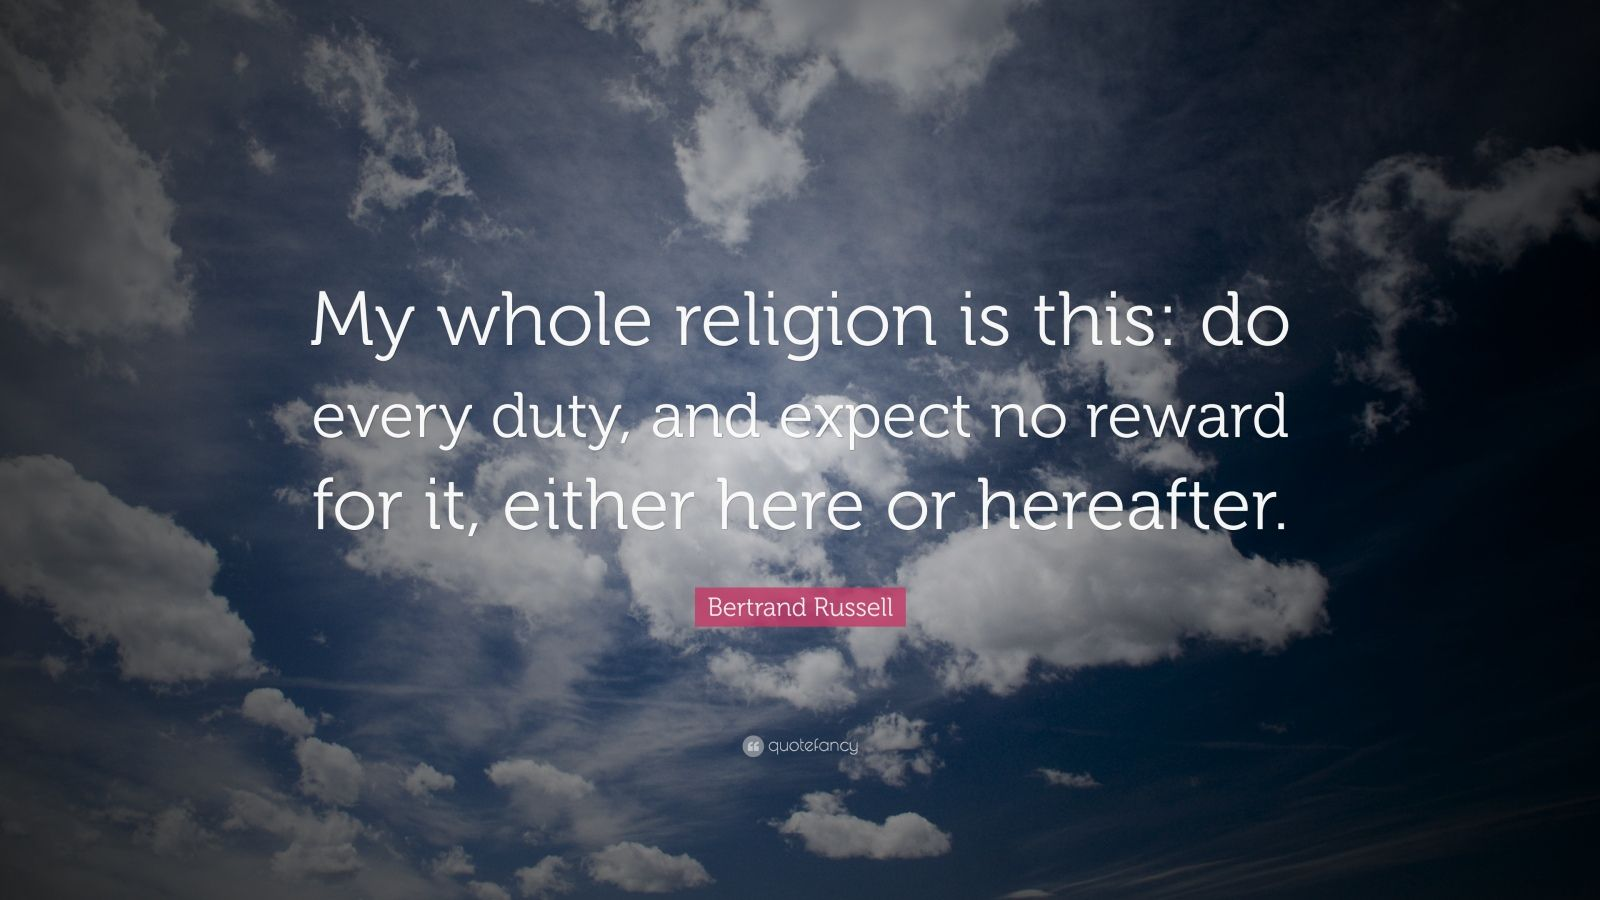 """Bertrand Russell Quote: """"My whole religion is this: do every duty, and expect no reward for it, either here or hereafter."""""""